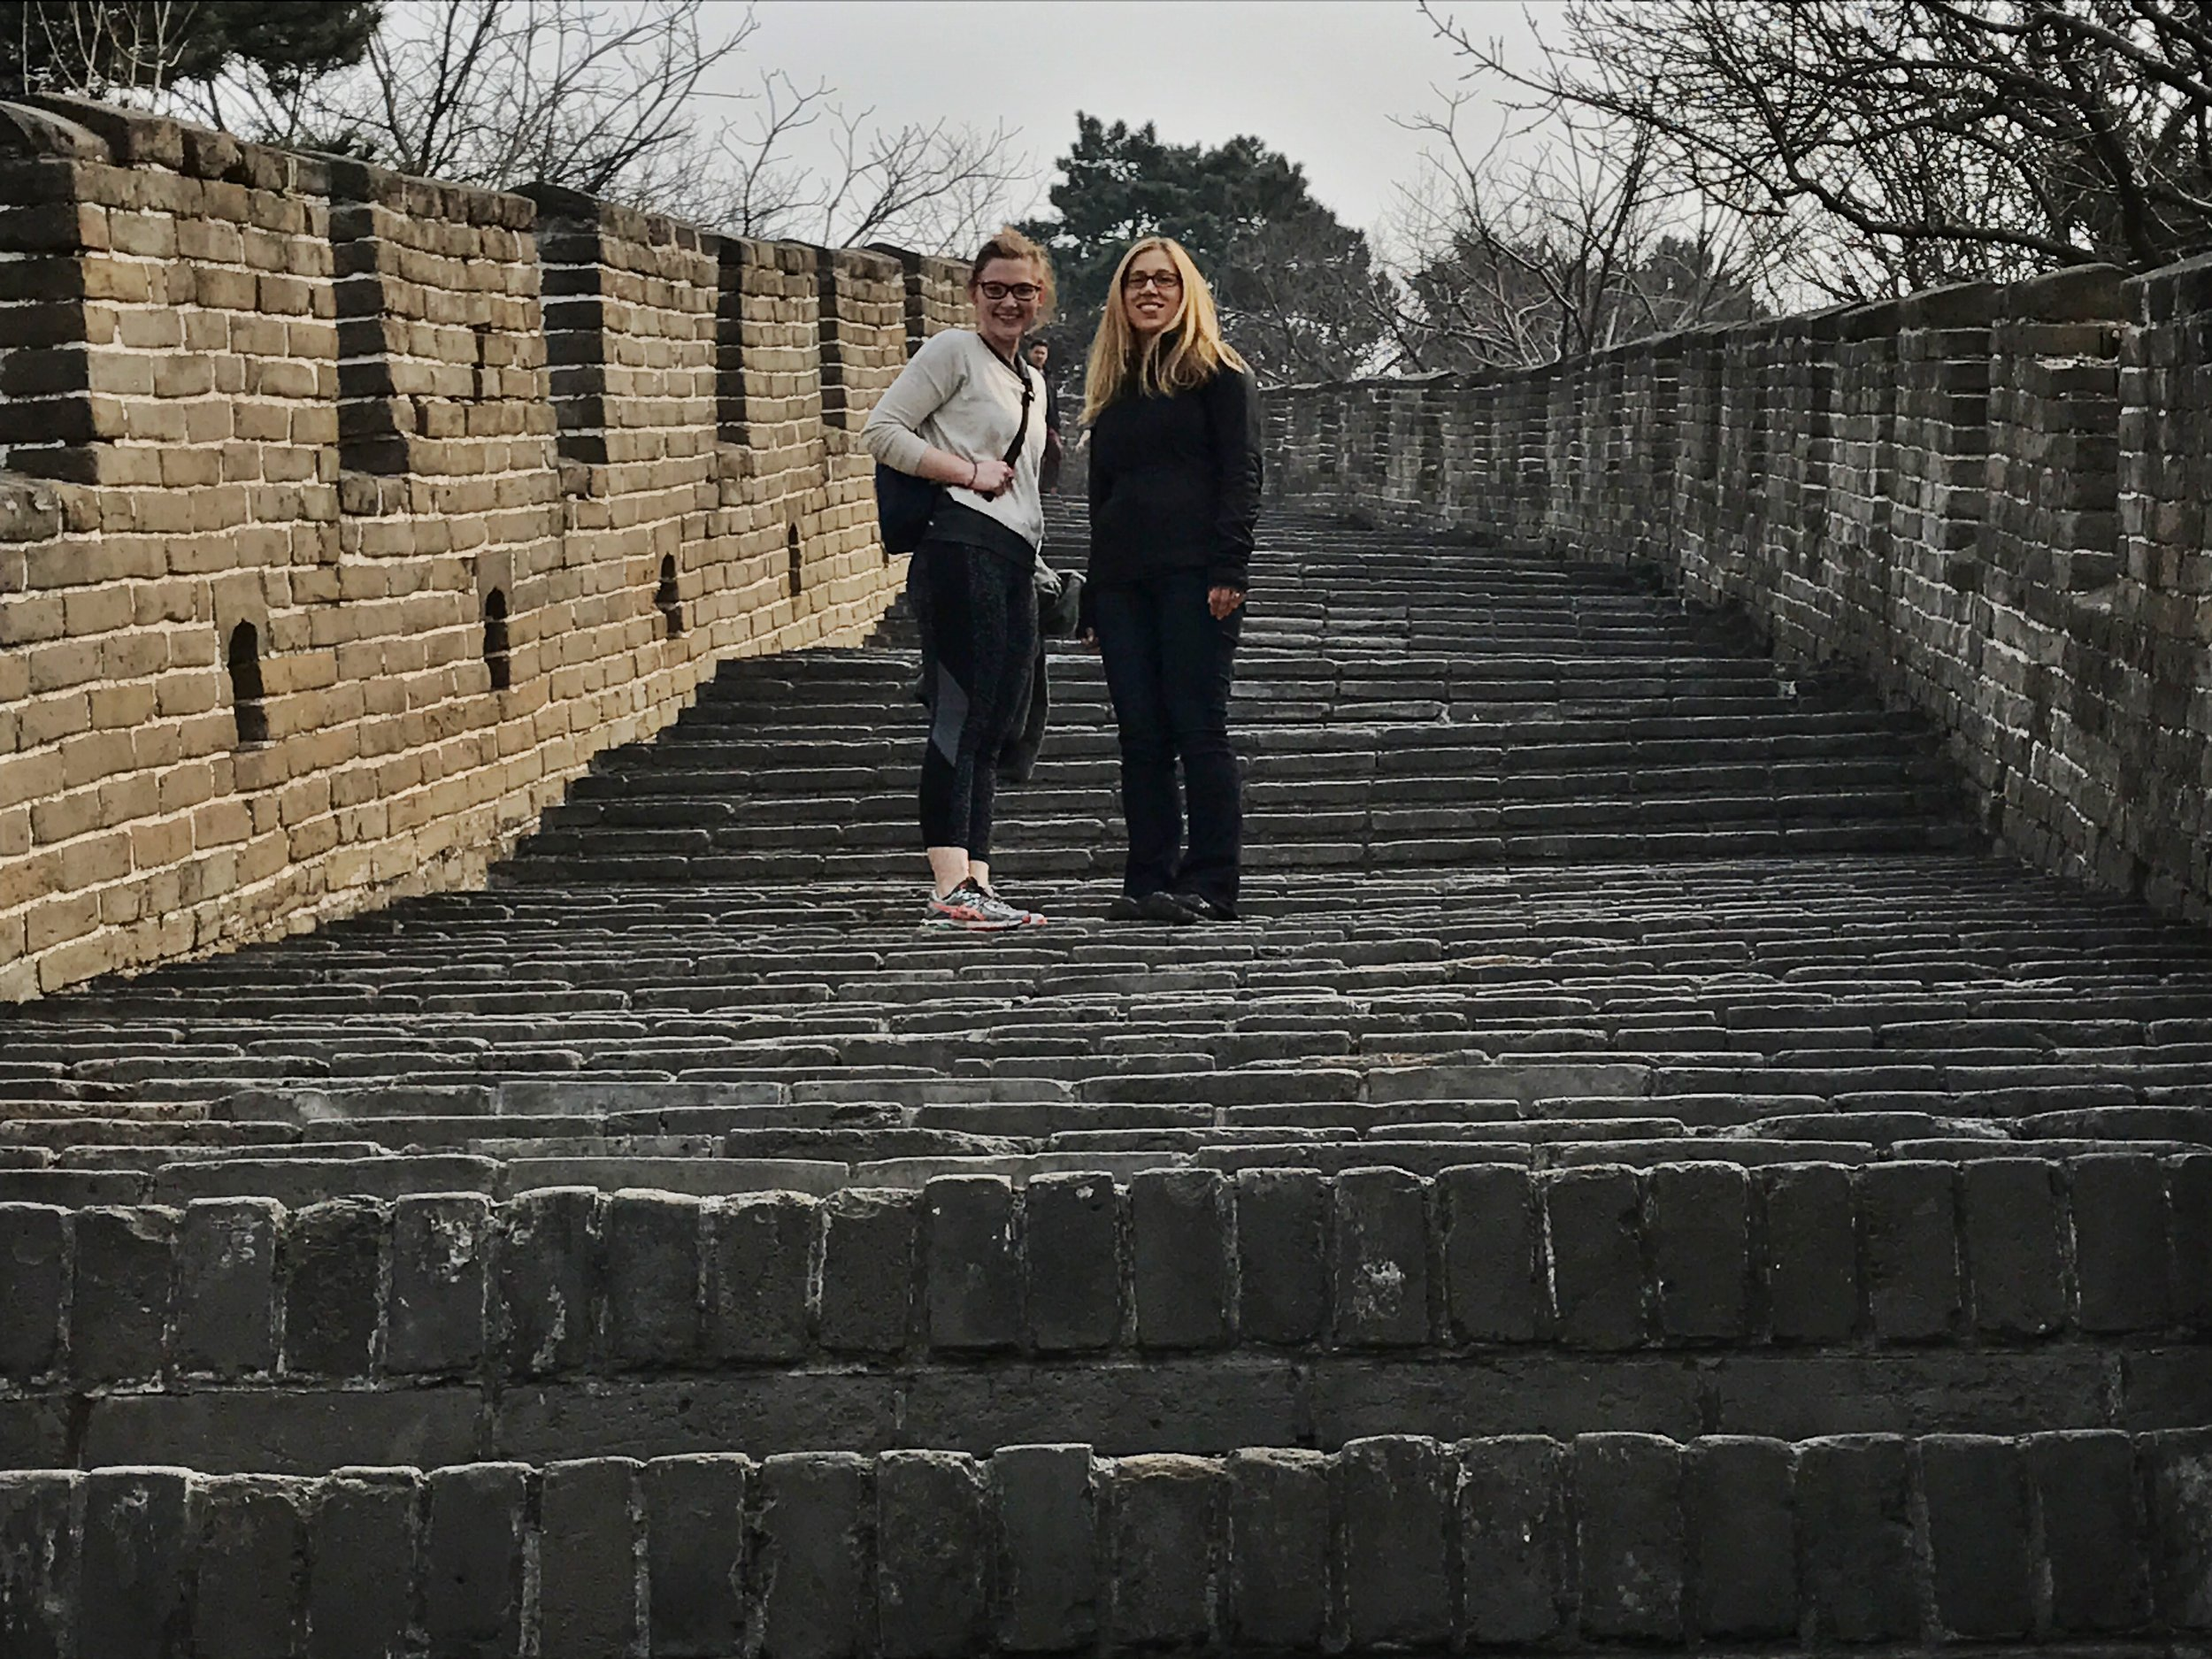 Kimmy and Janet on the Great Wall. Look how steep those stairs are!